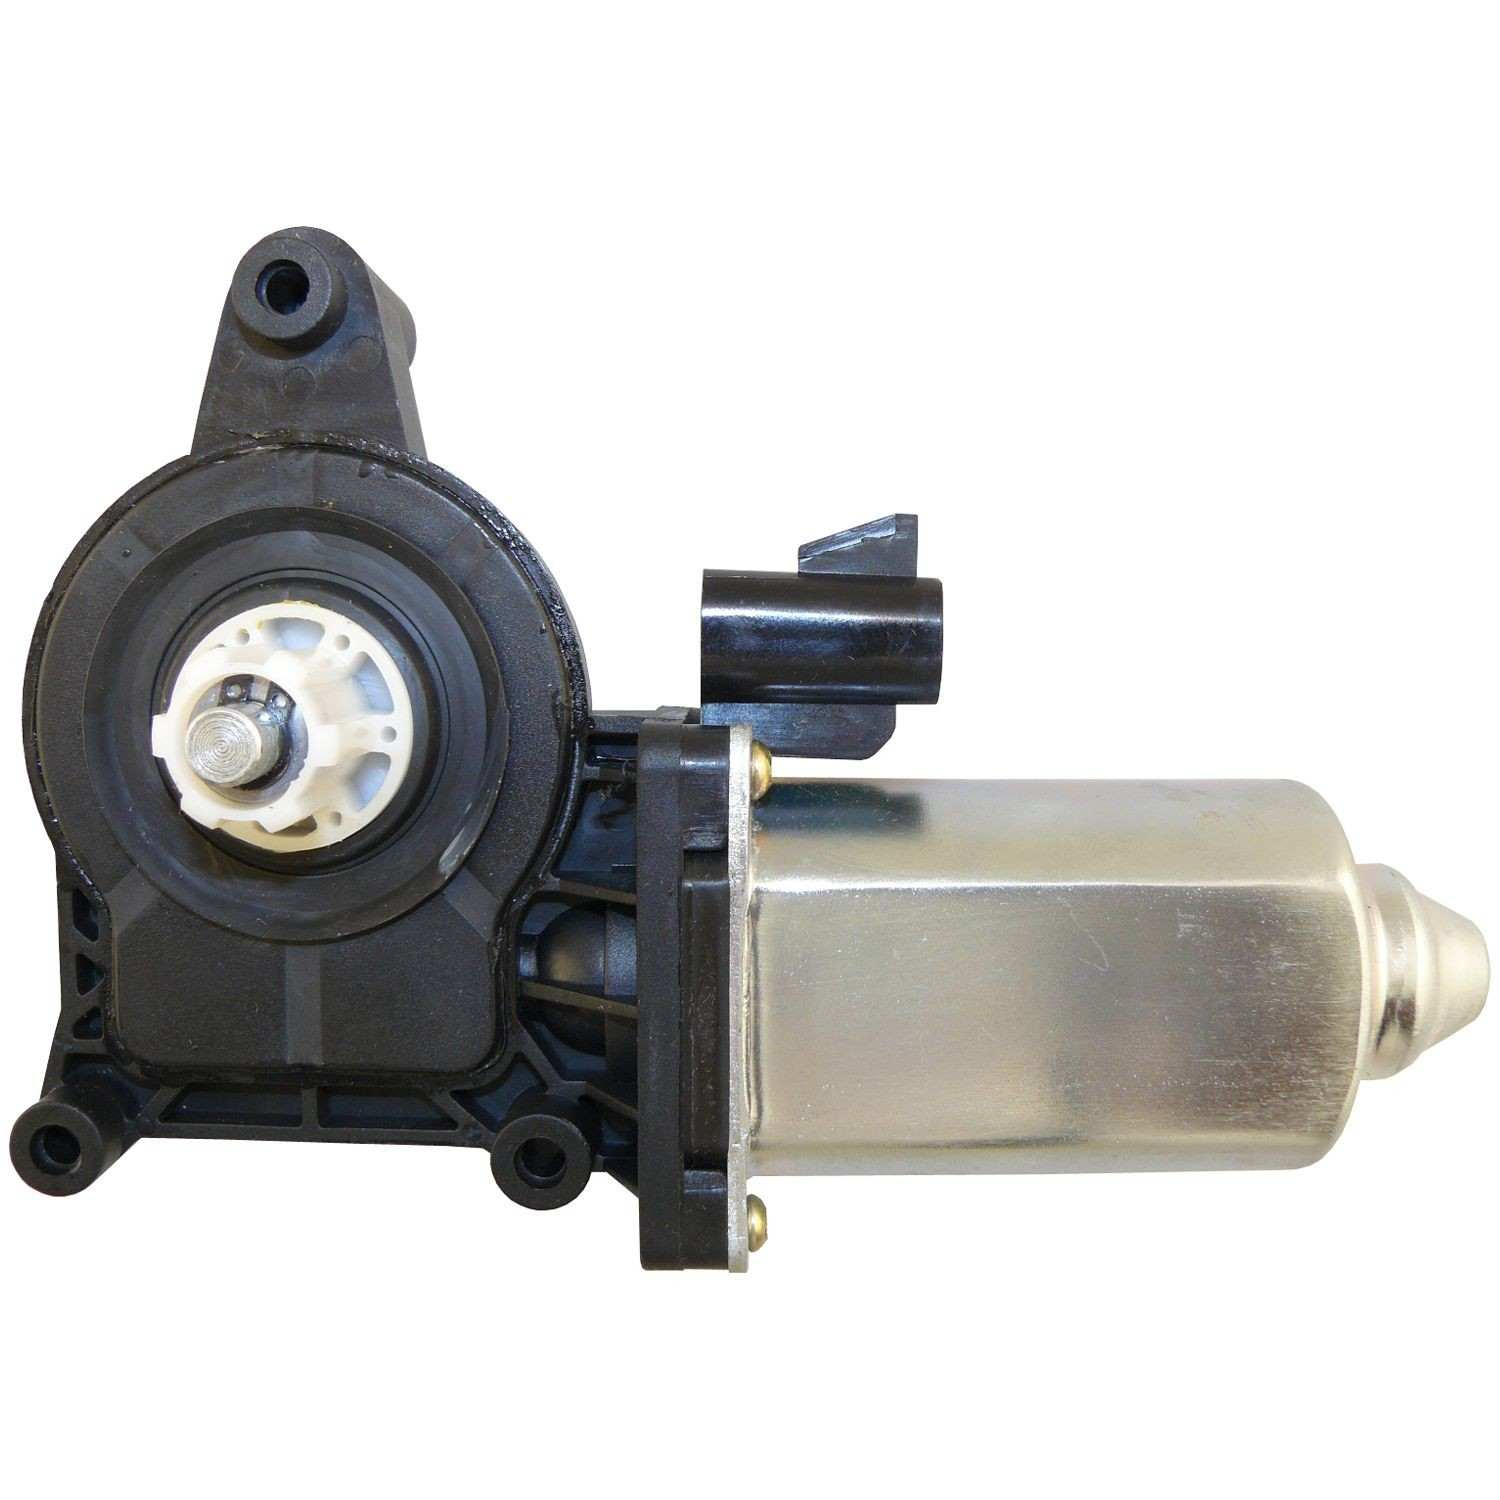 MAGNETI MARELLI OFFERED BY MOPAR - Power Window Motor - MGM 1AMWM82982